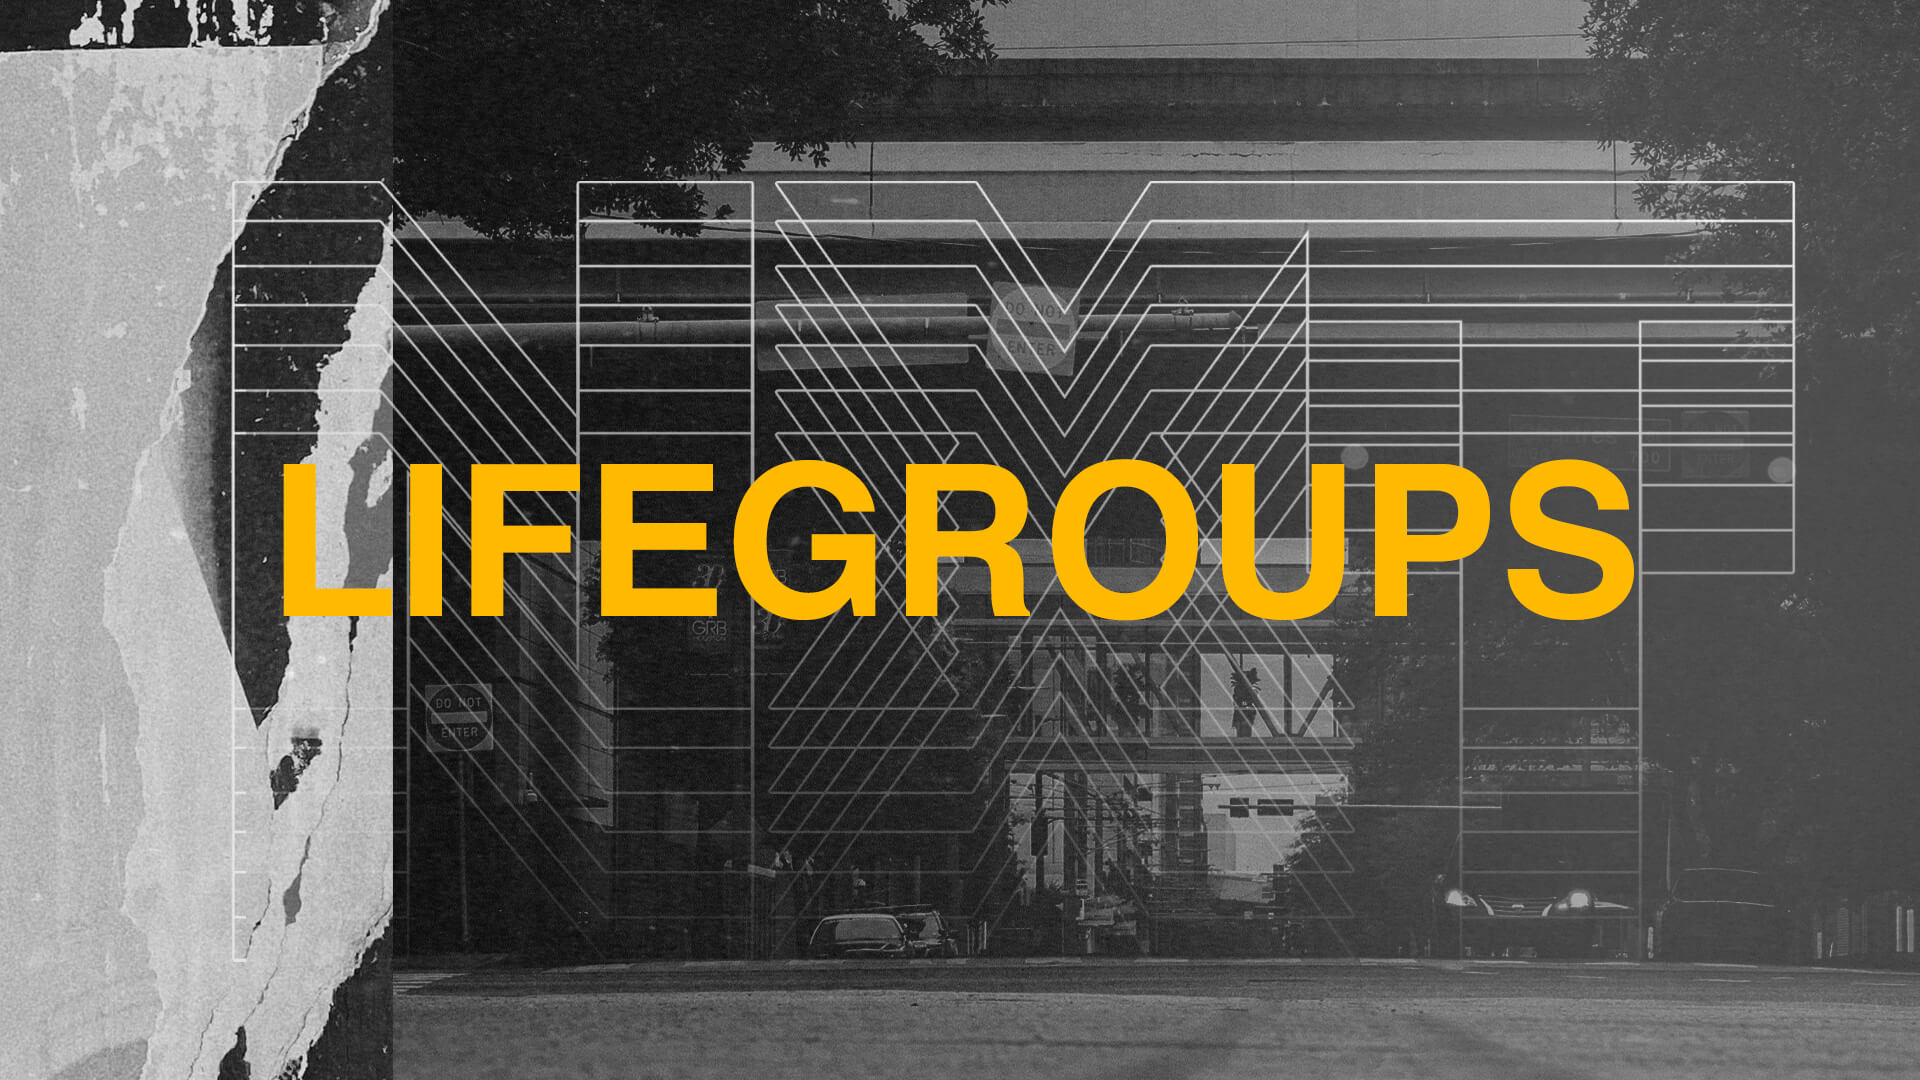 NextGen LifeGroups